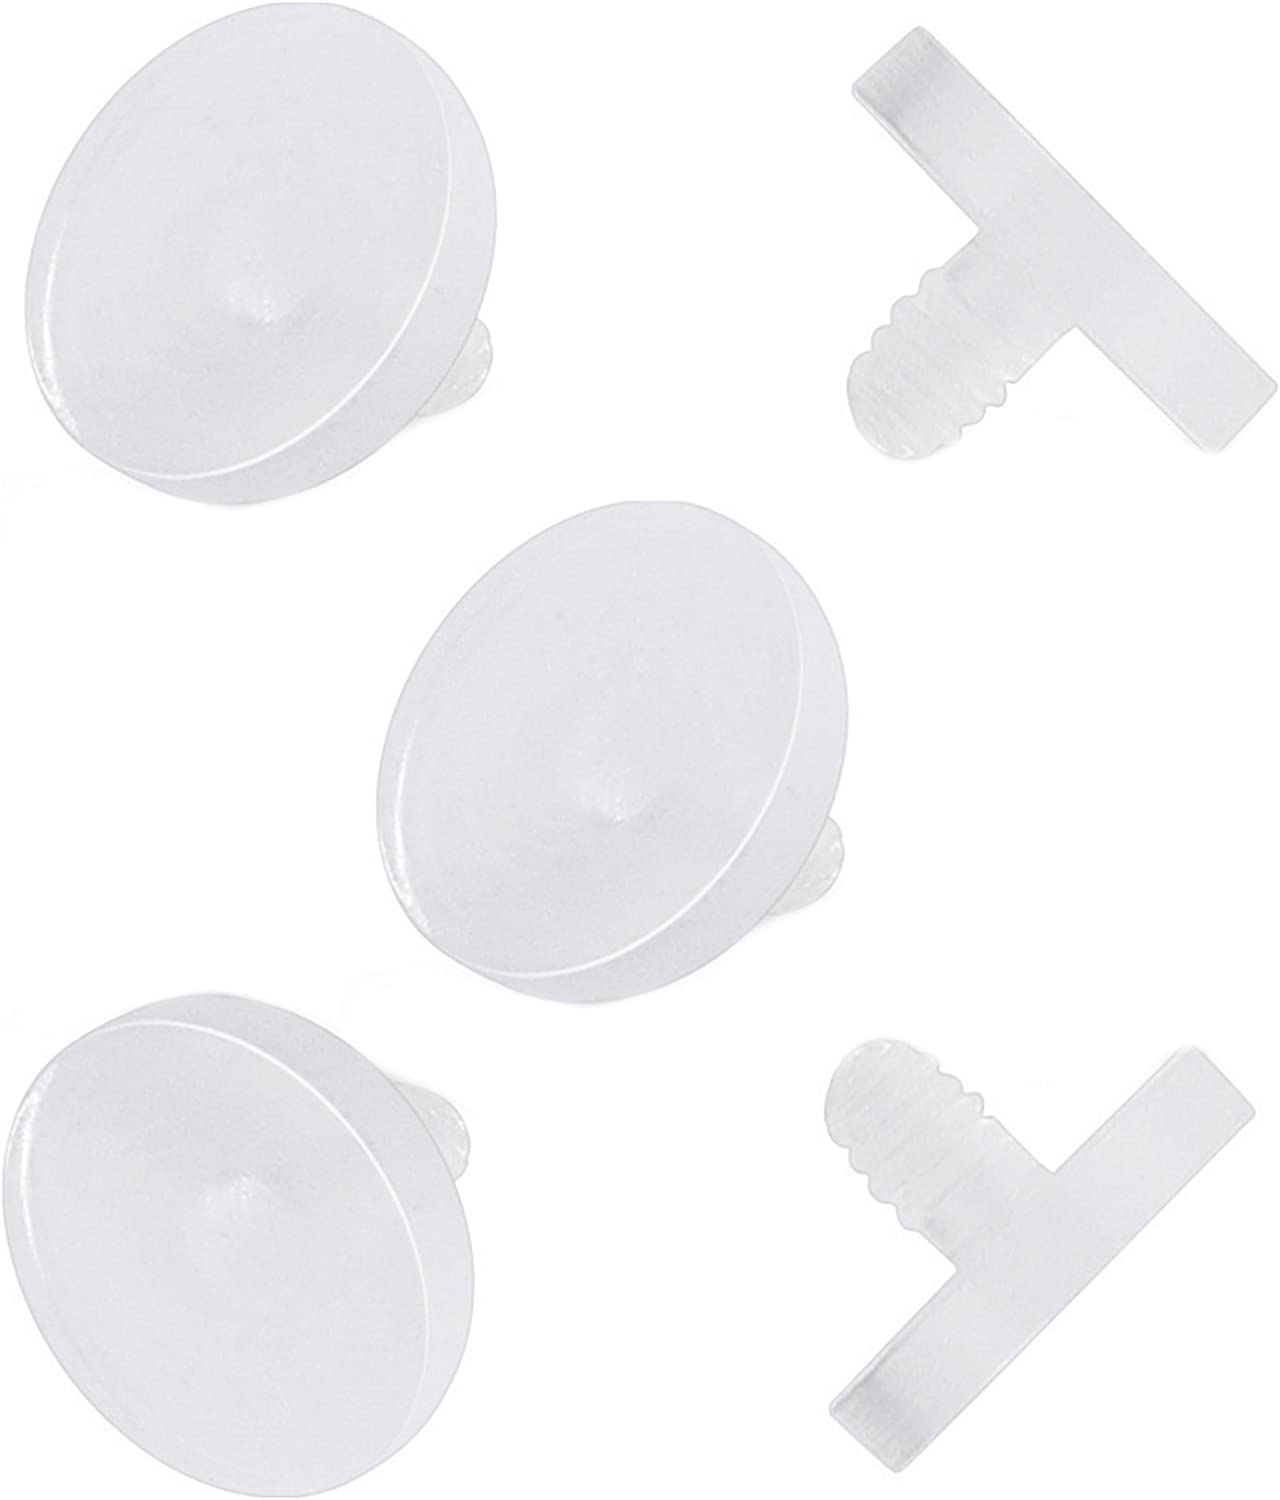 Allergy Free Pierced Owl Set of 10 Clear Acrylic 4mm Dermal Anchor Retainer Tops Metal Free